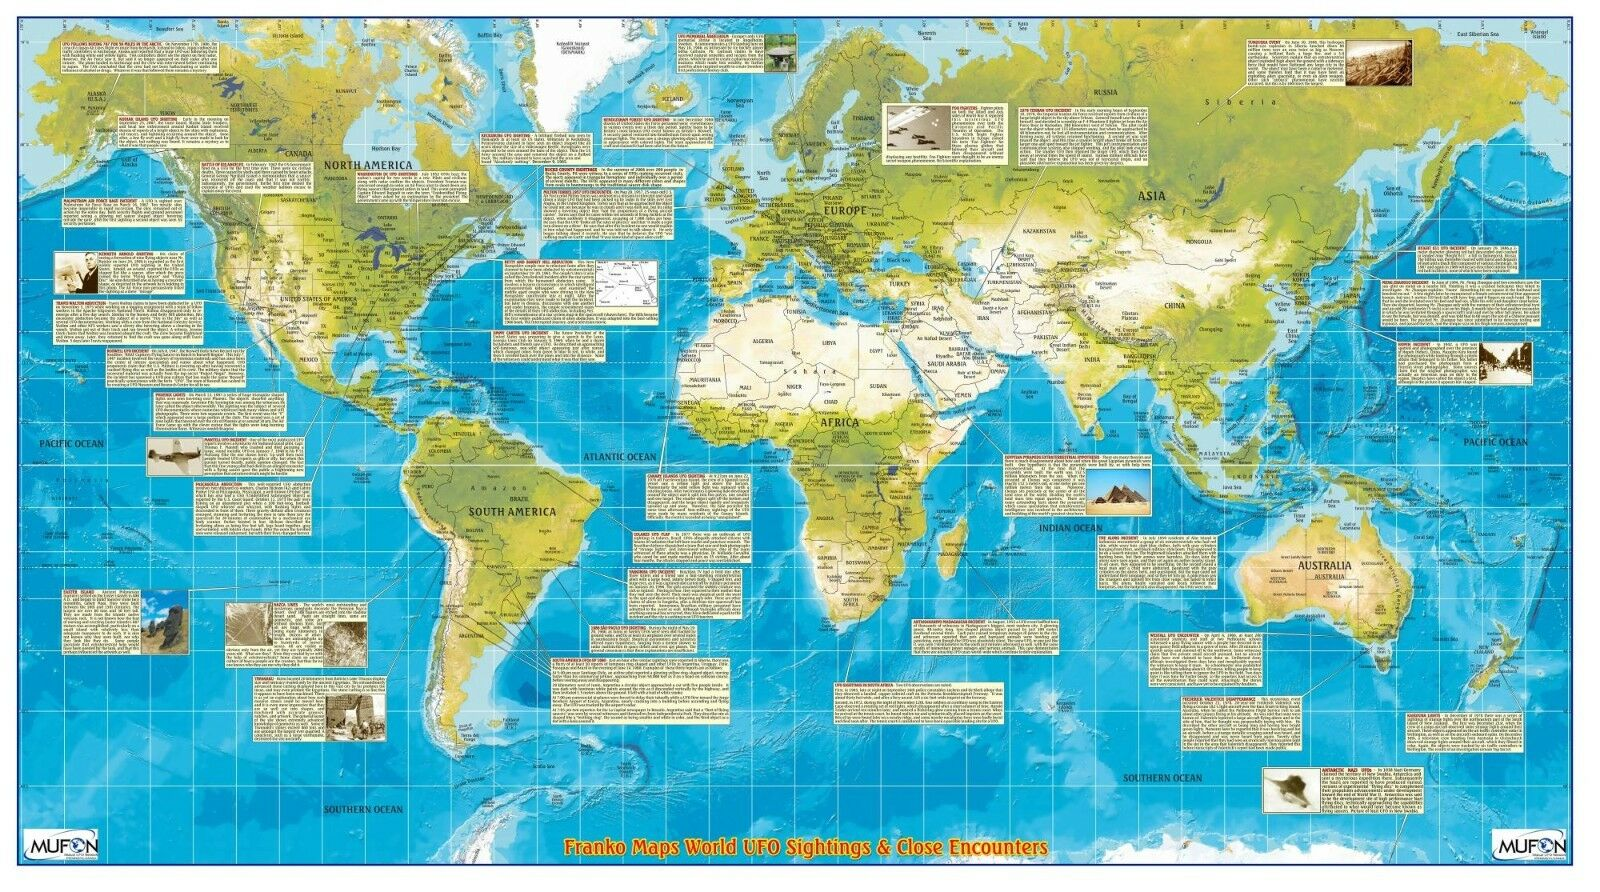 Ufo sightings close encounters world map poster ebay brand new lowest price gumiabroncs Gallery